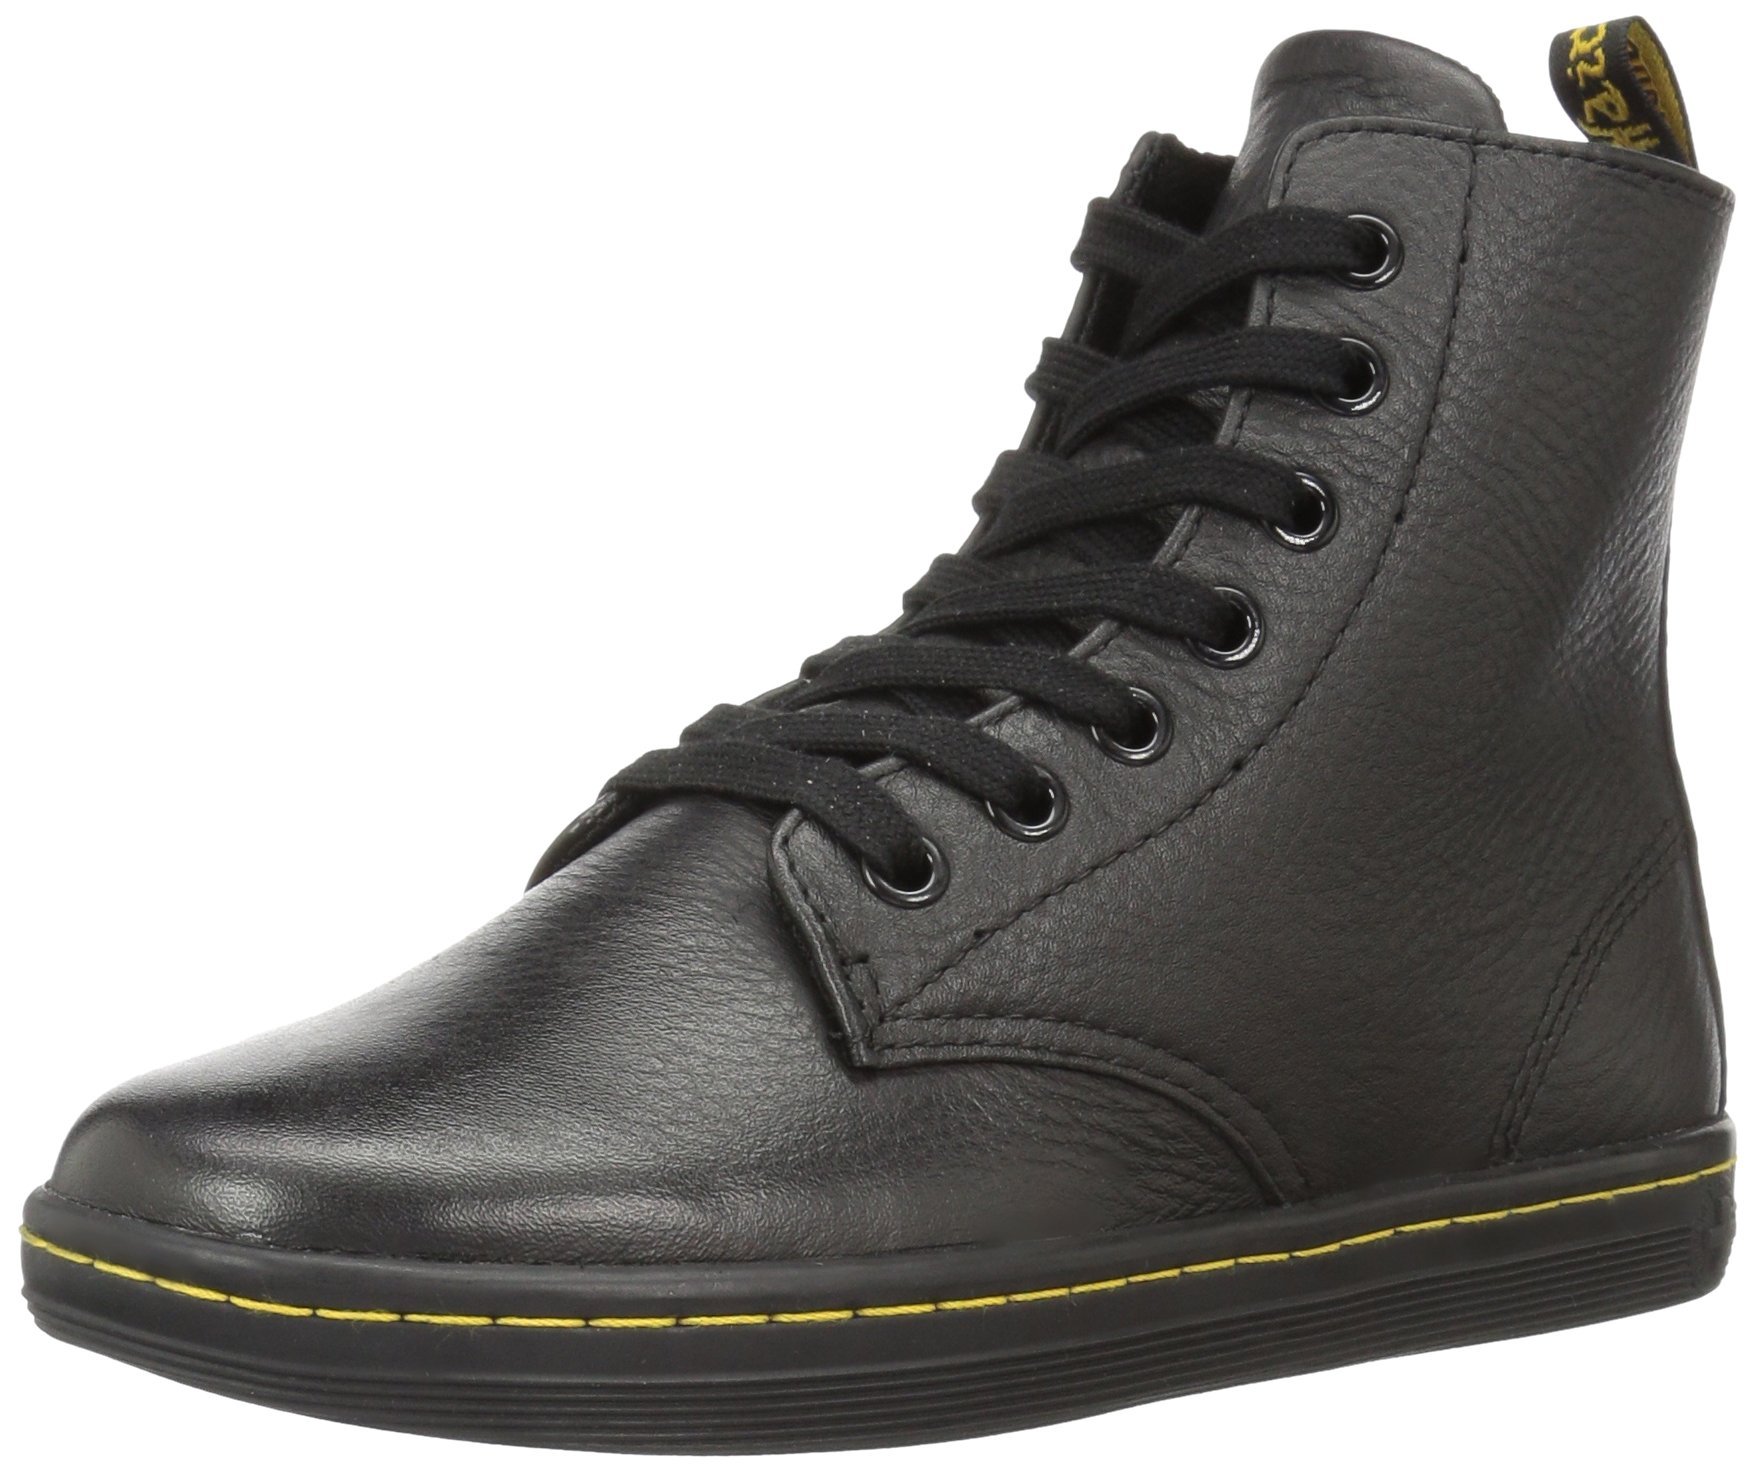 Dr. Martens Women's Leyton Boot,Black,8 UK/10 M US